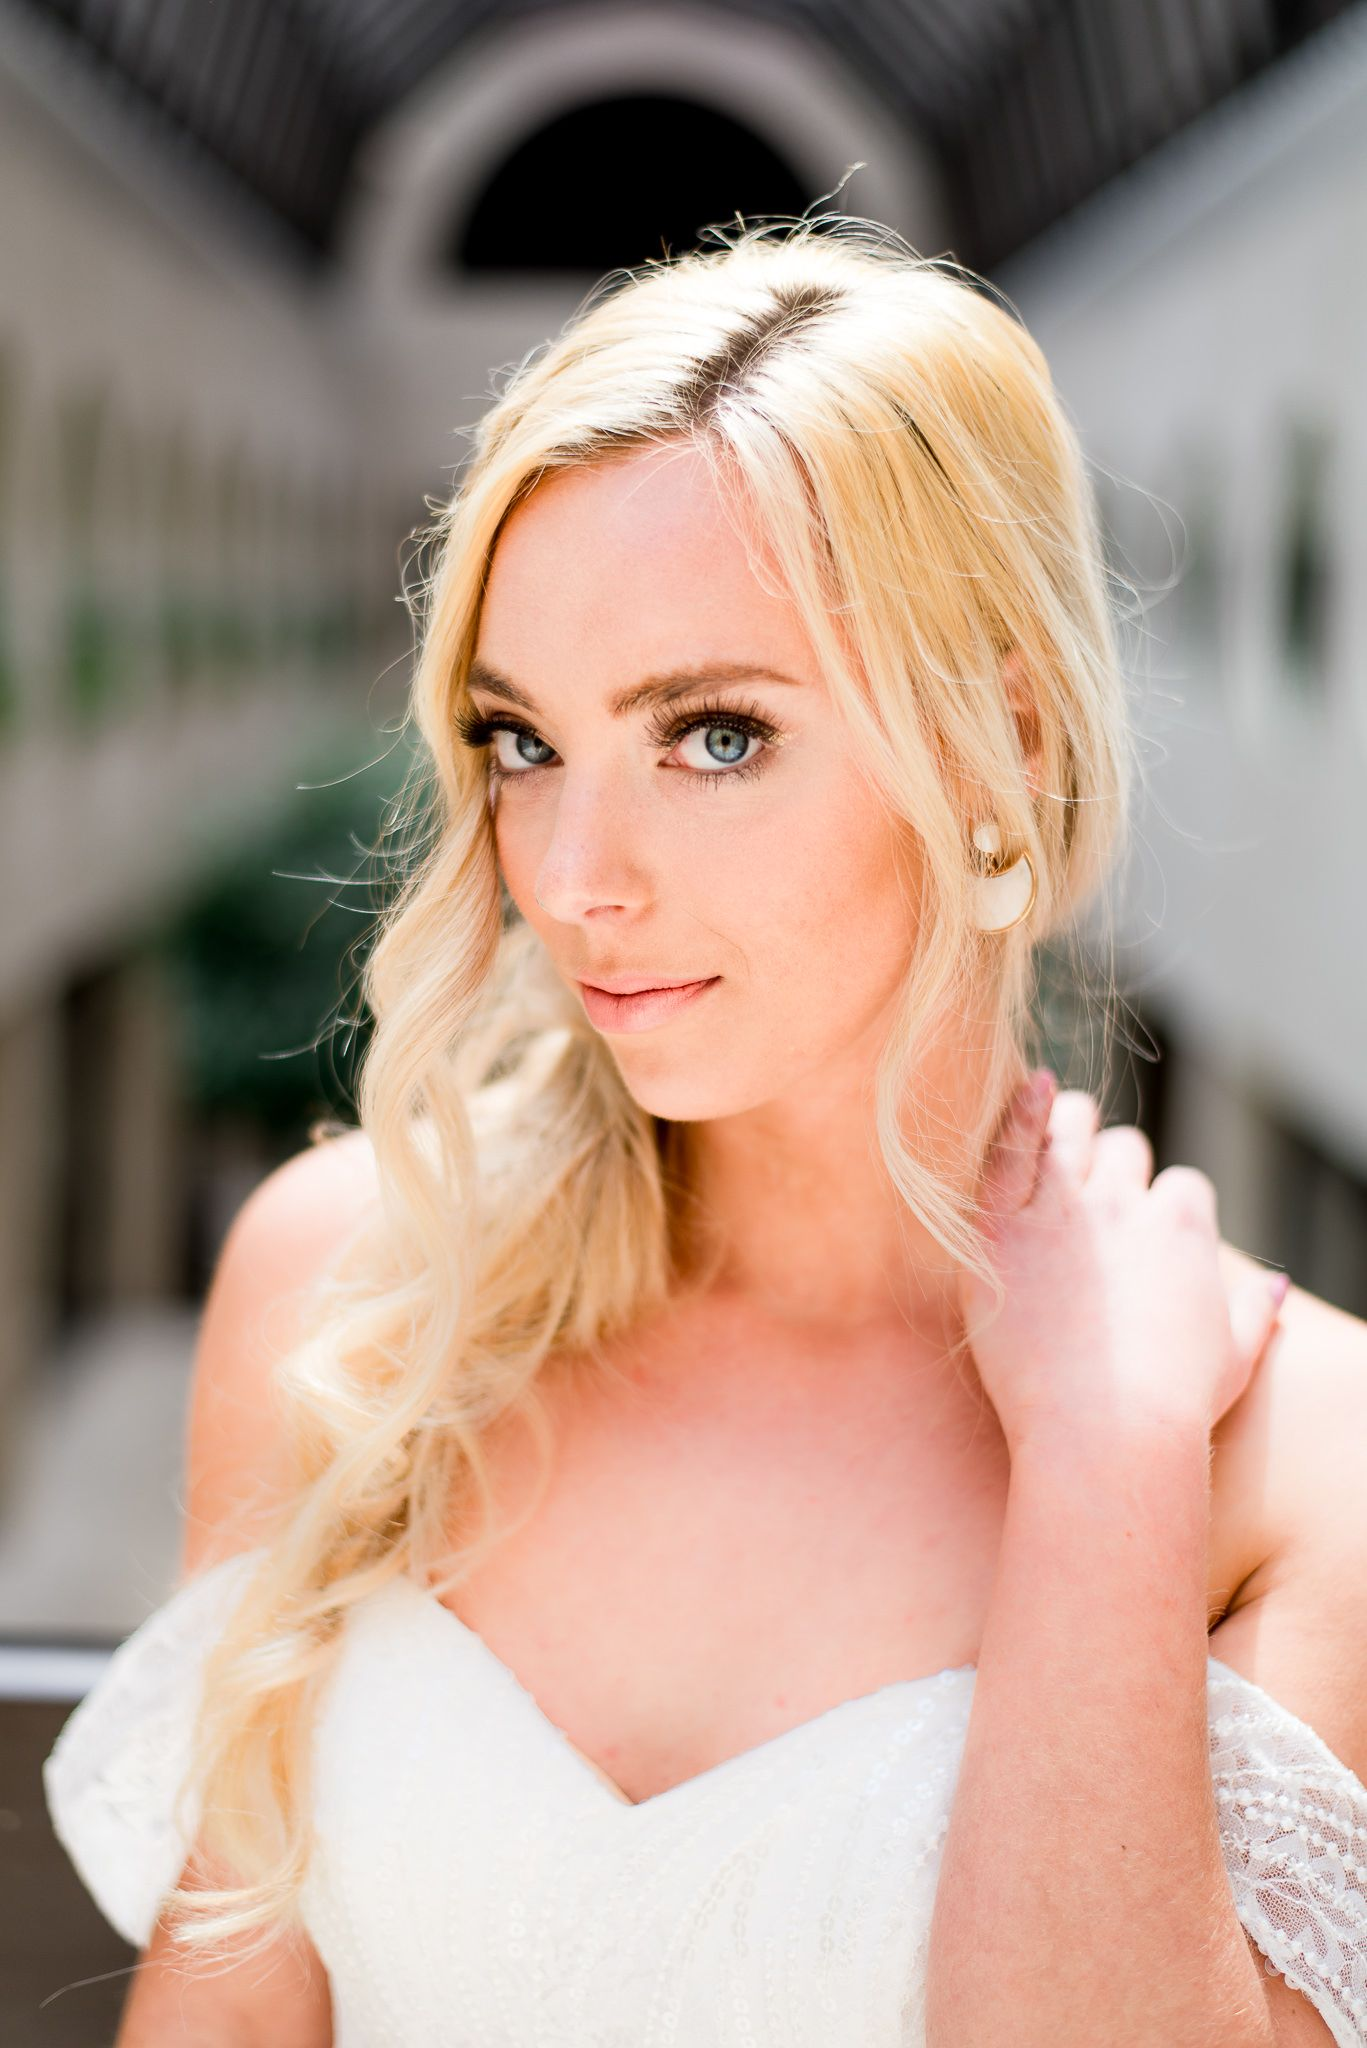 blue eyed blonde bride looks into camera and puts her hand on her neck